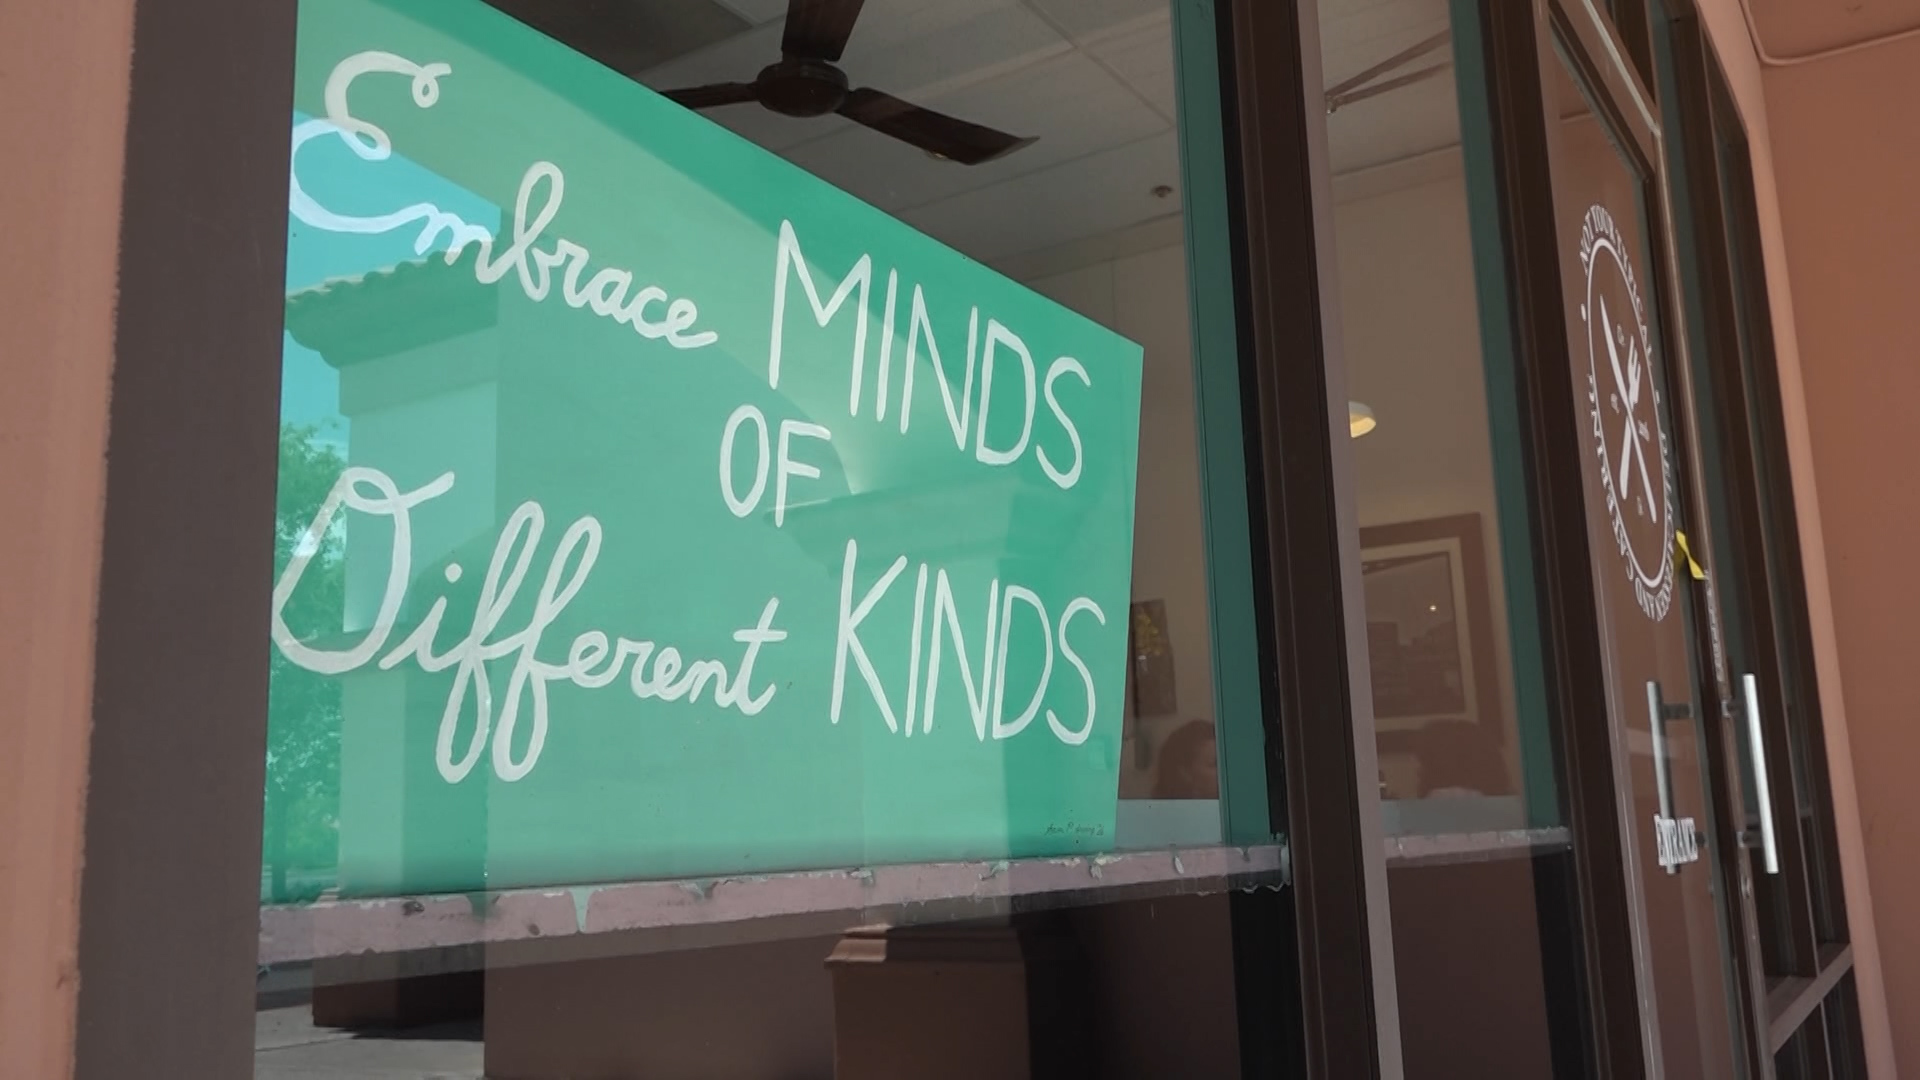 Not Your Typical Deli is changing lives and extending opportunities.